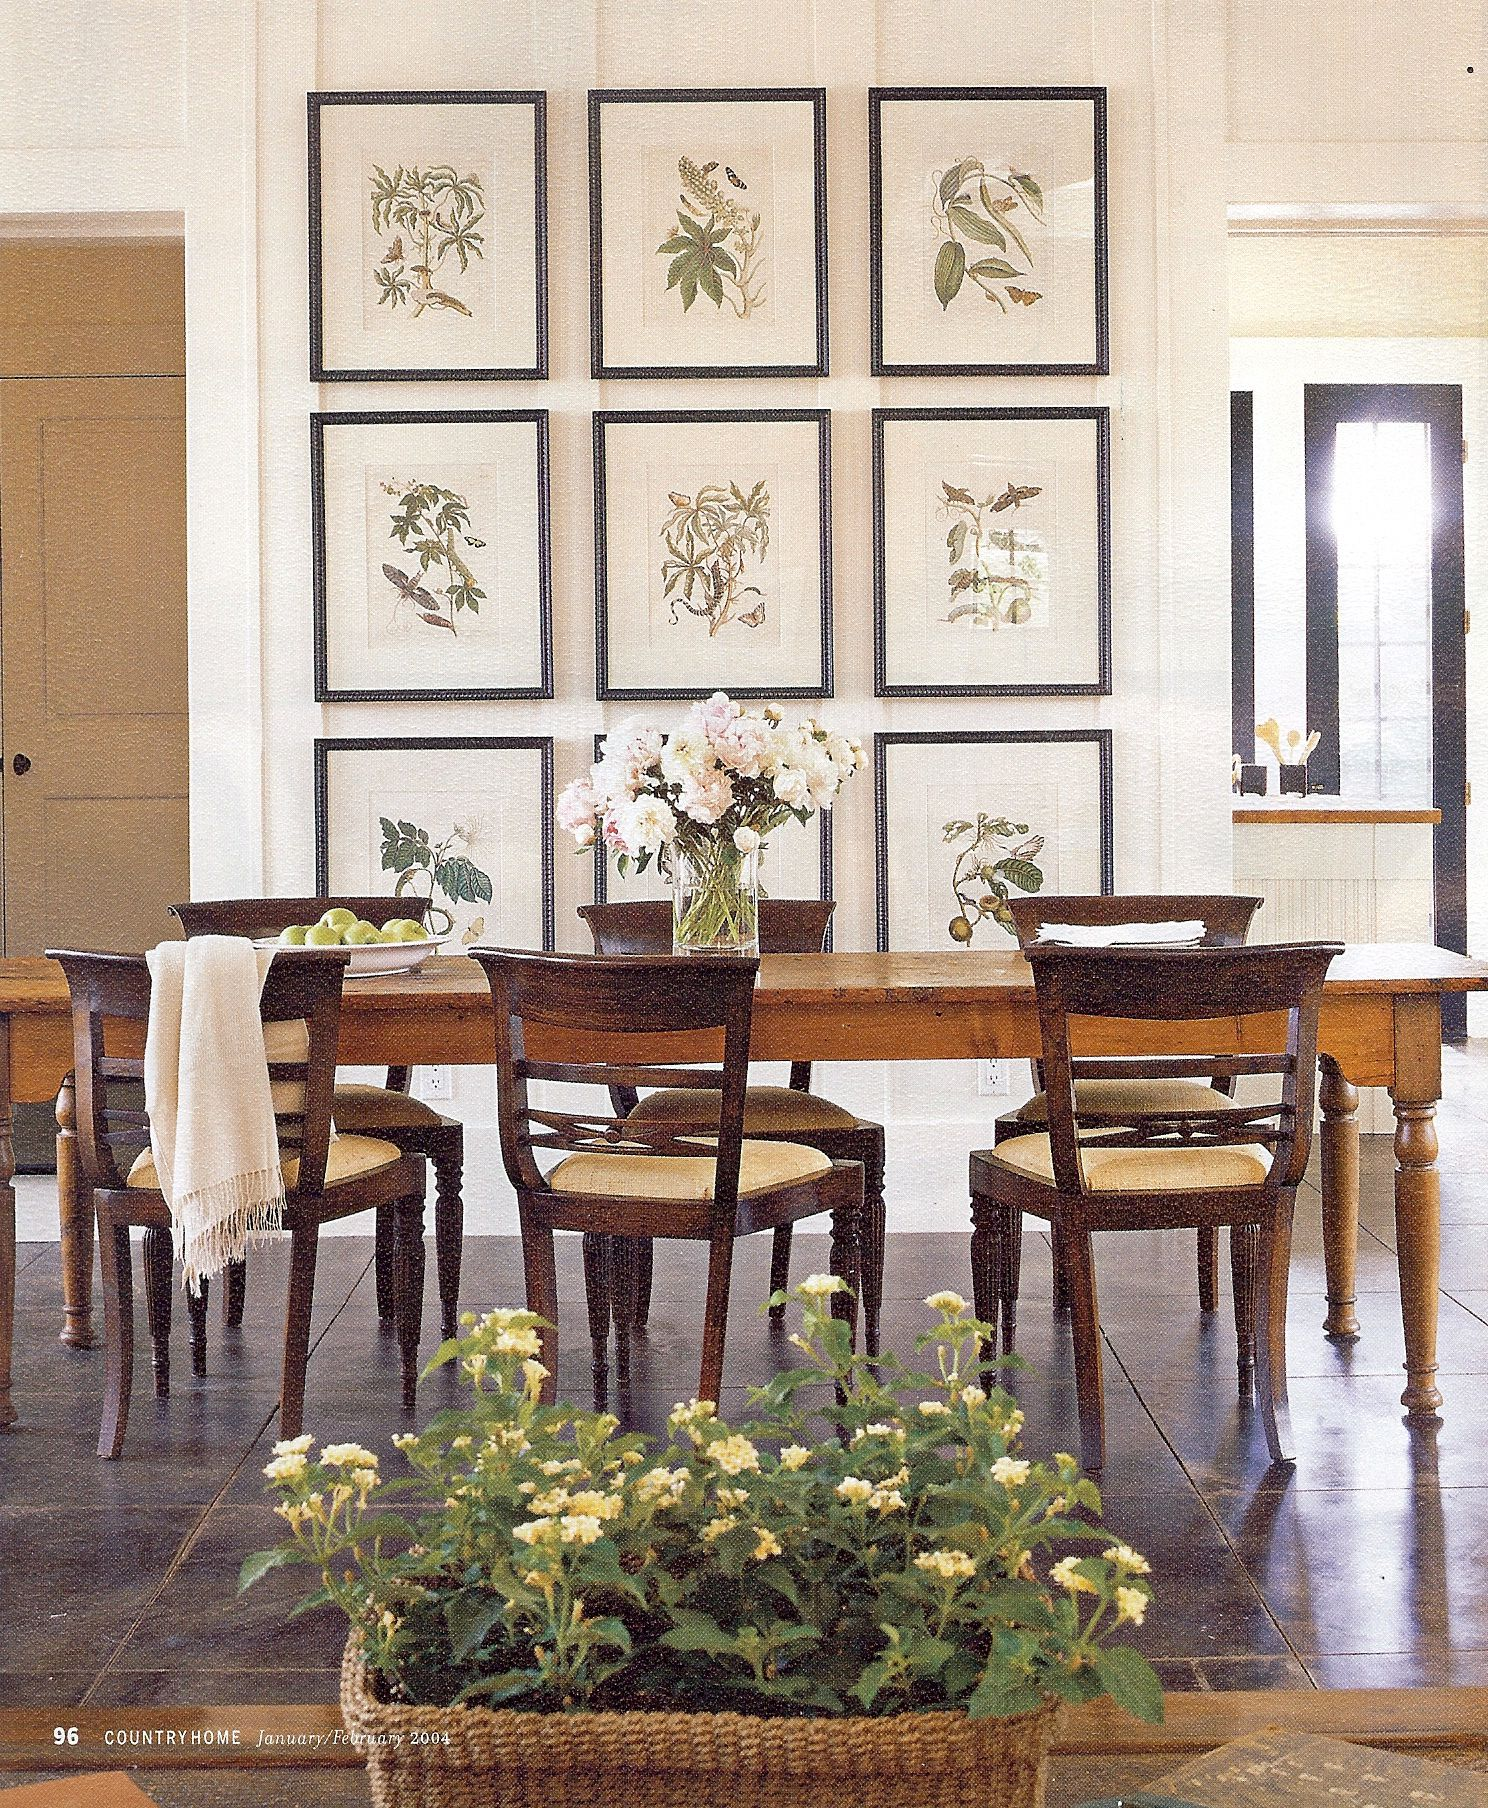 Interior design classic shingle style pinterest for Wall decor for dining room area